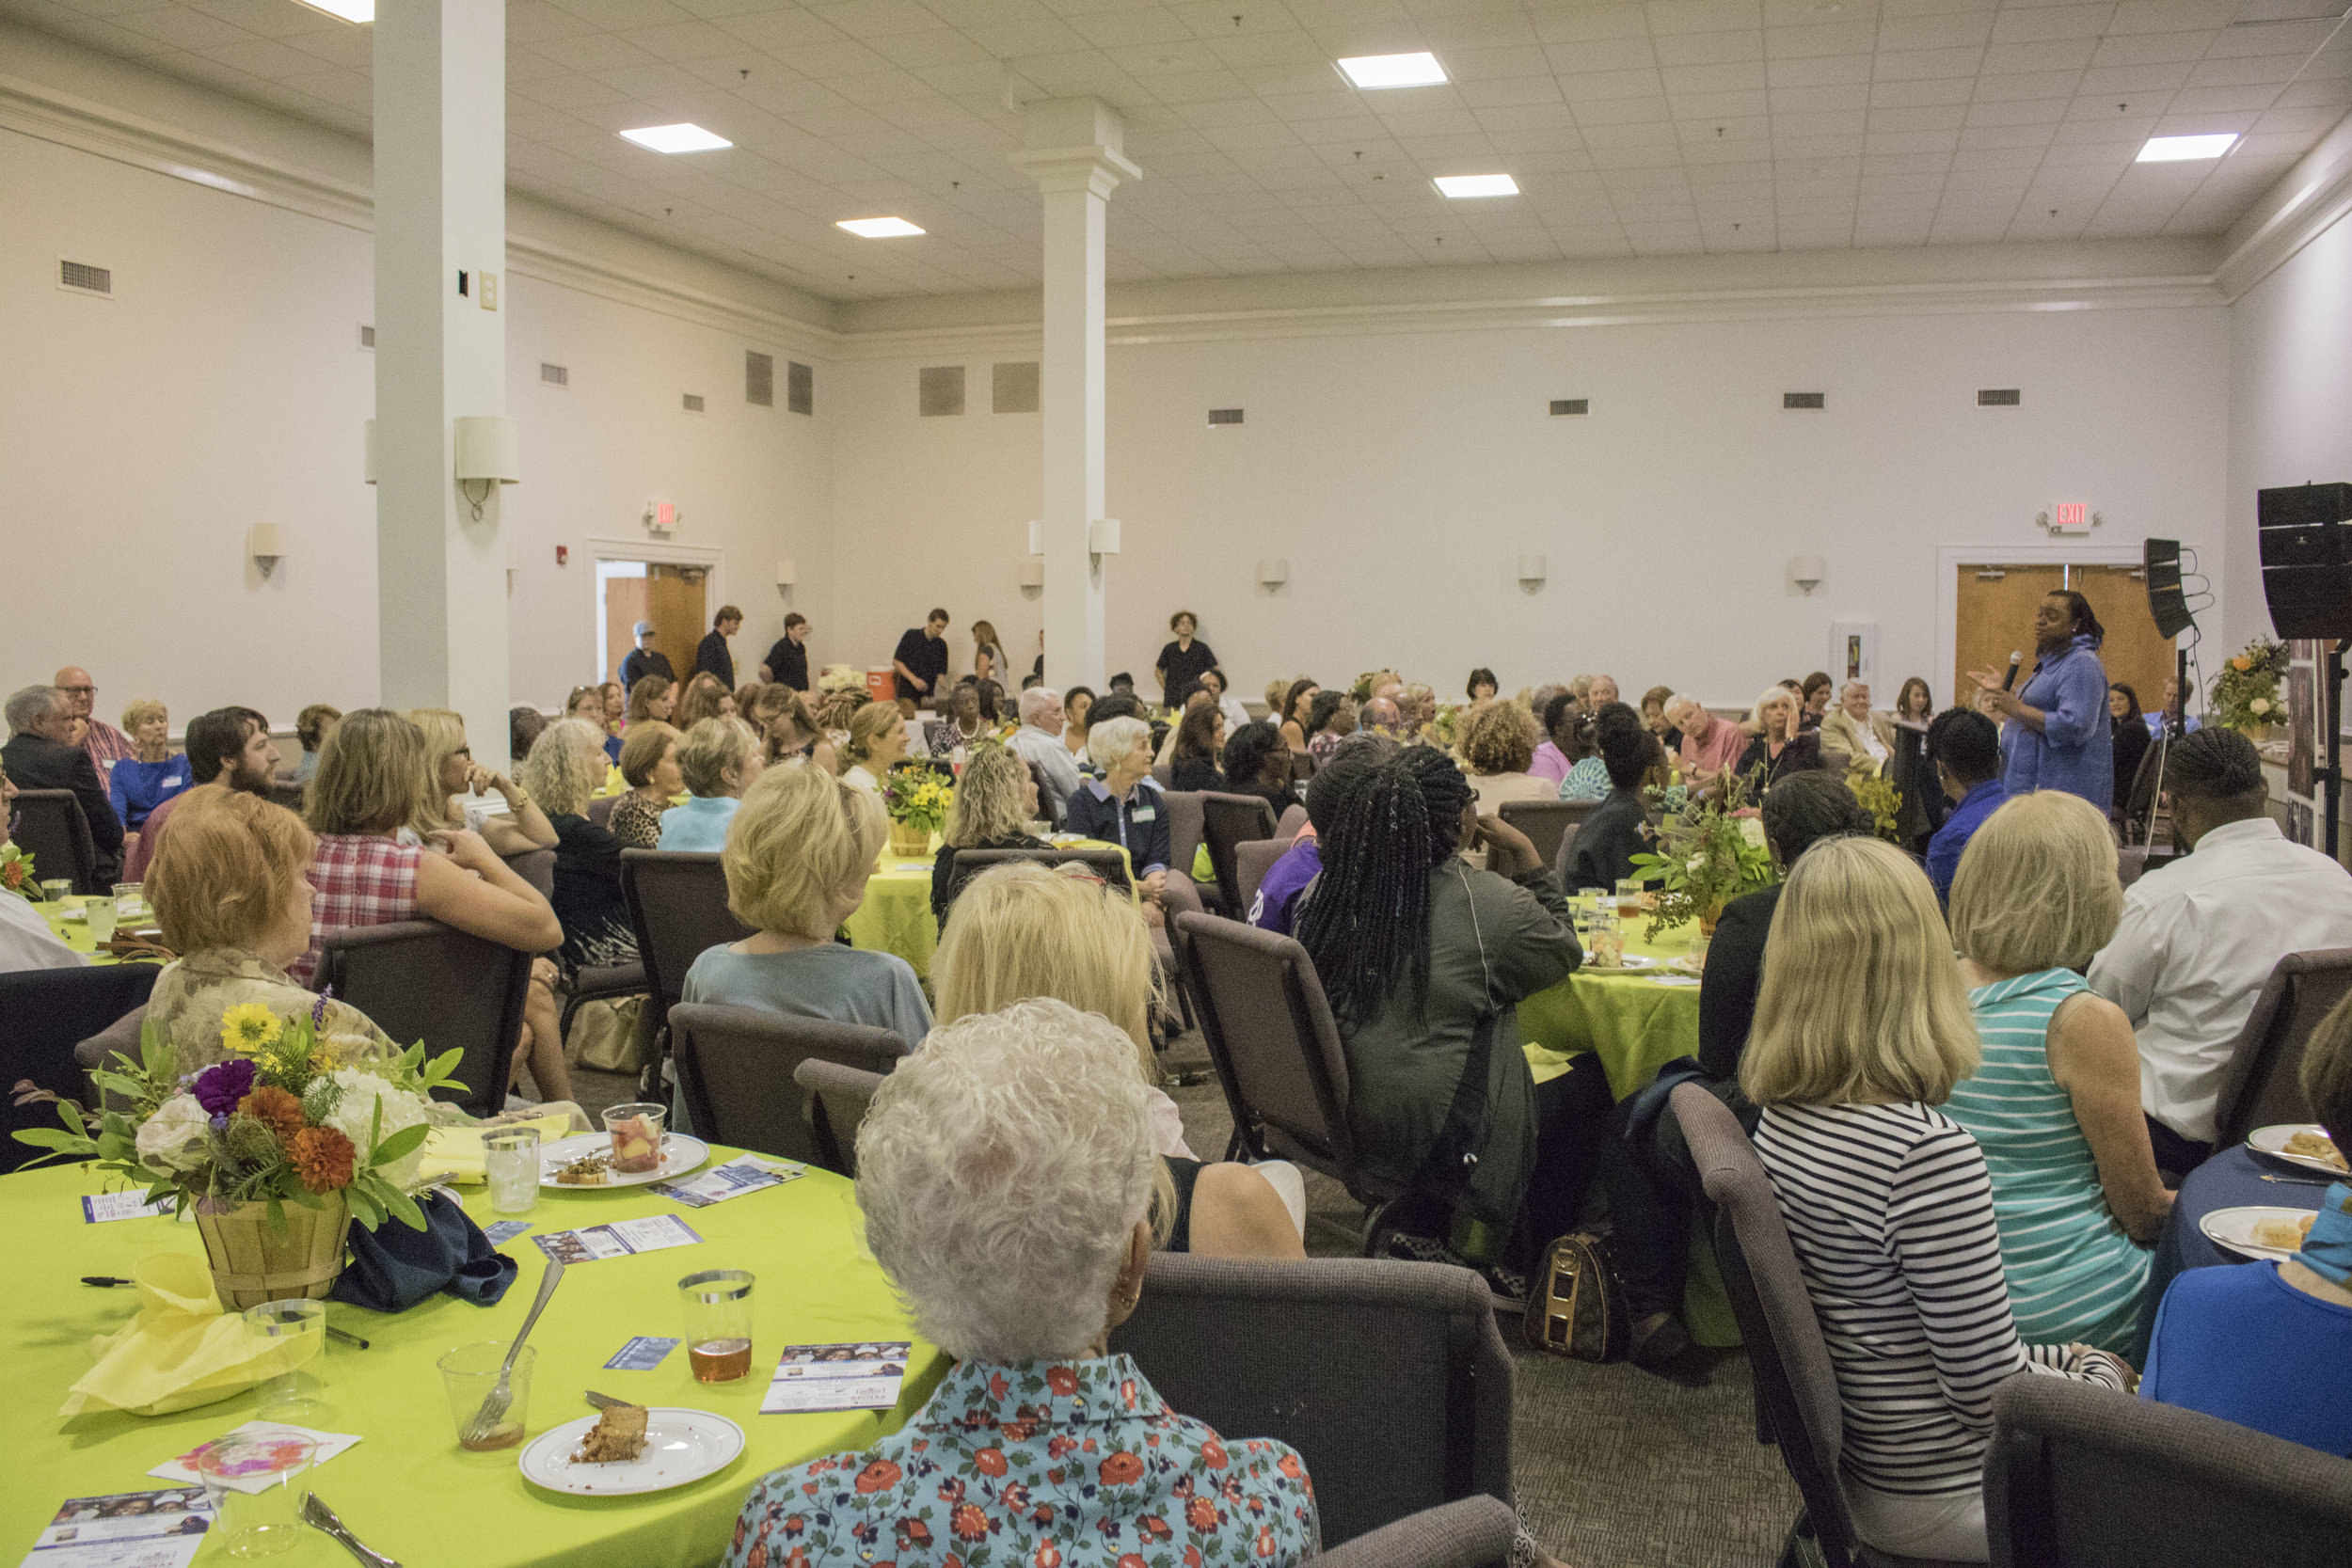 Liz Huntley shared her story to a full room at the event.